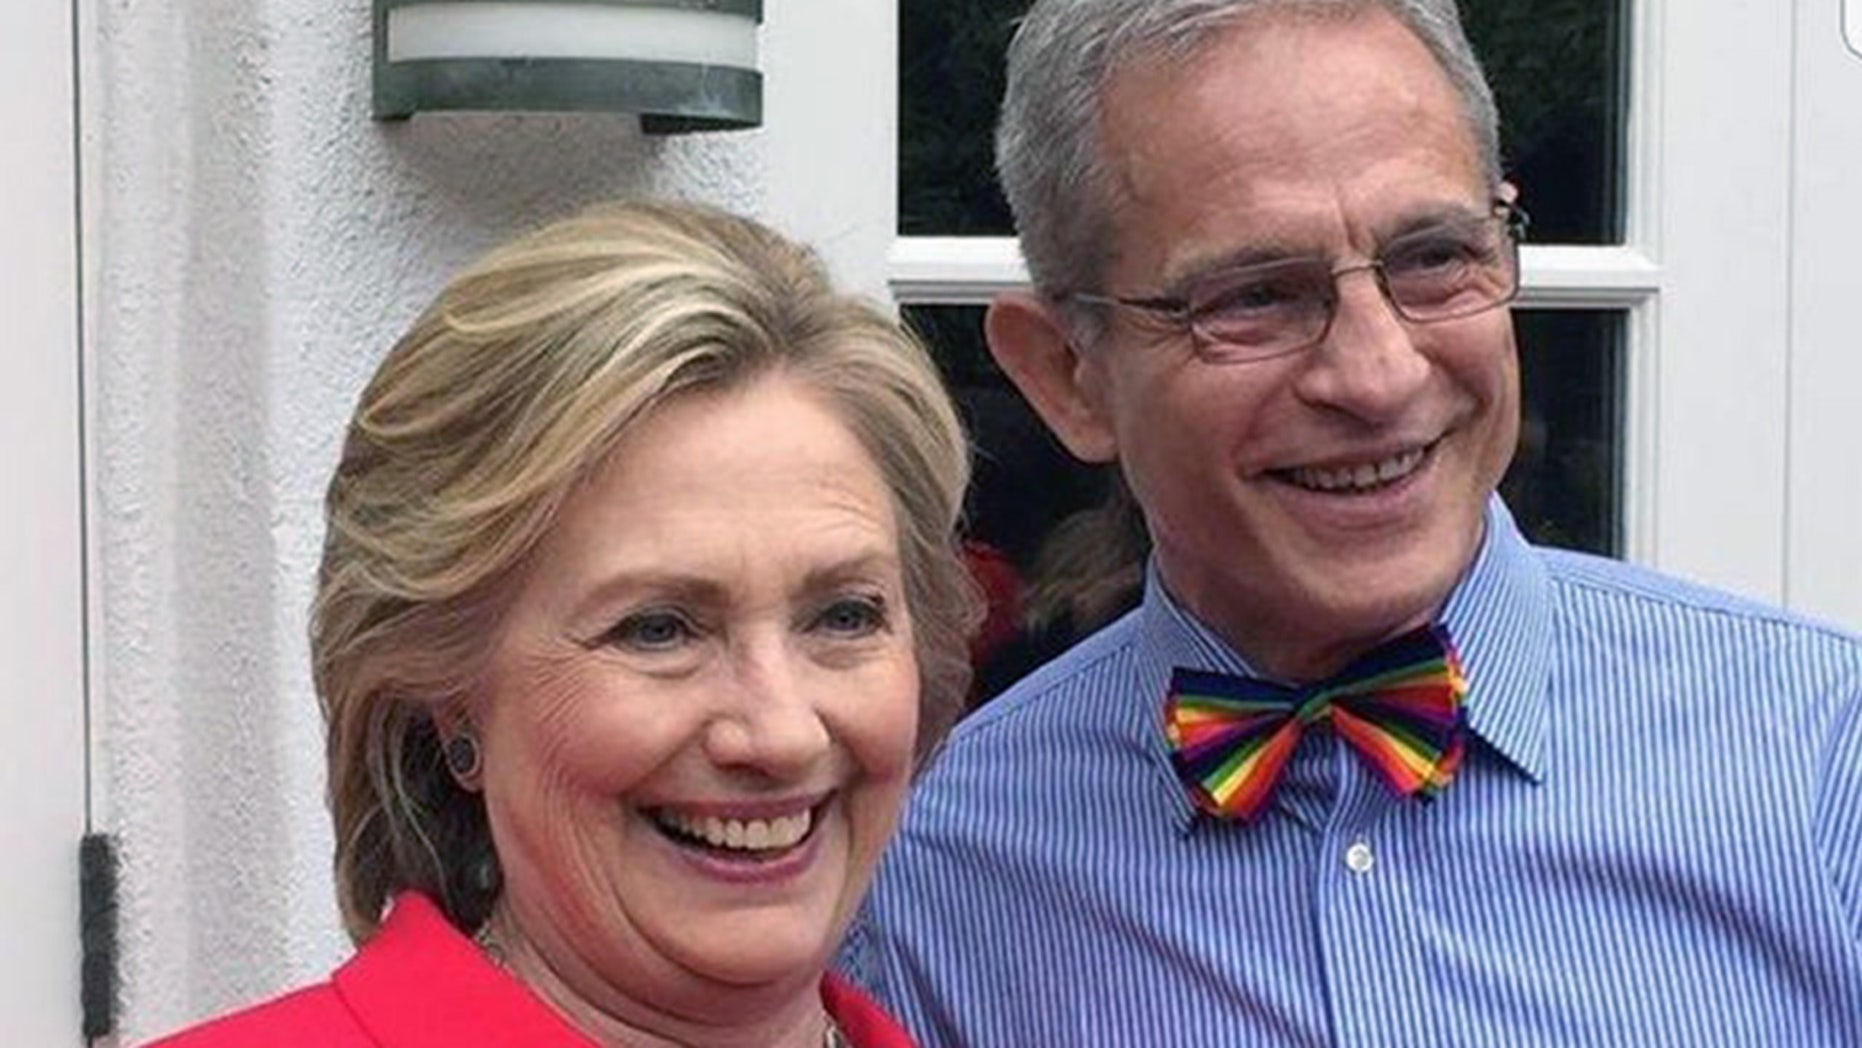 Ed Buck, right, poses with Hillary Clinton